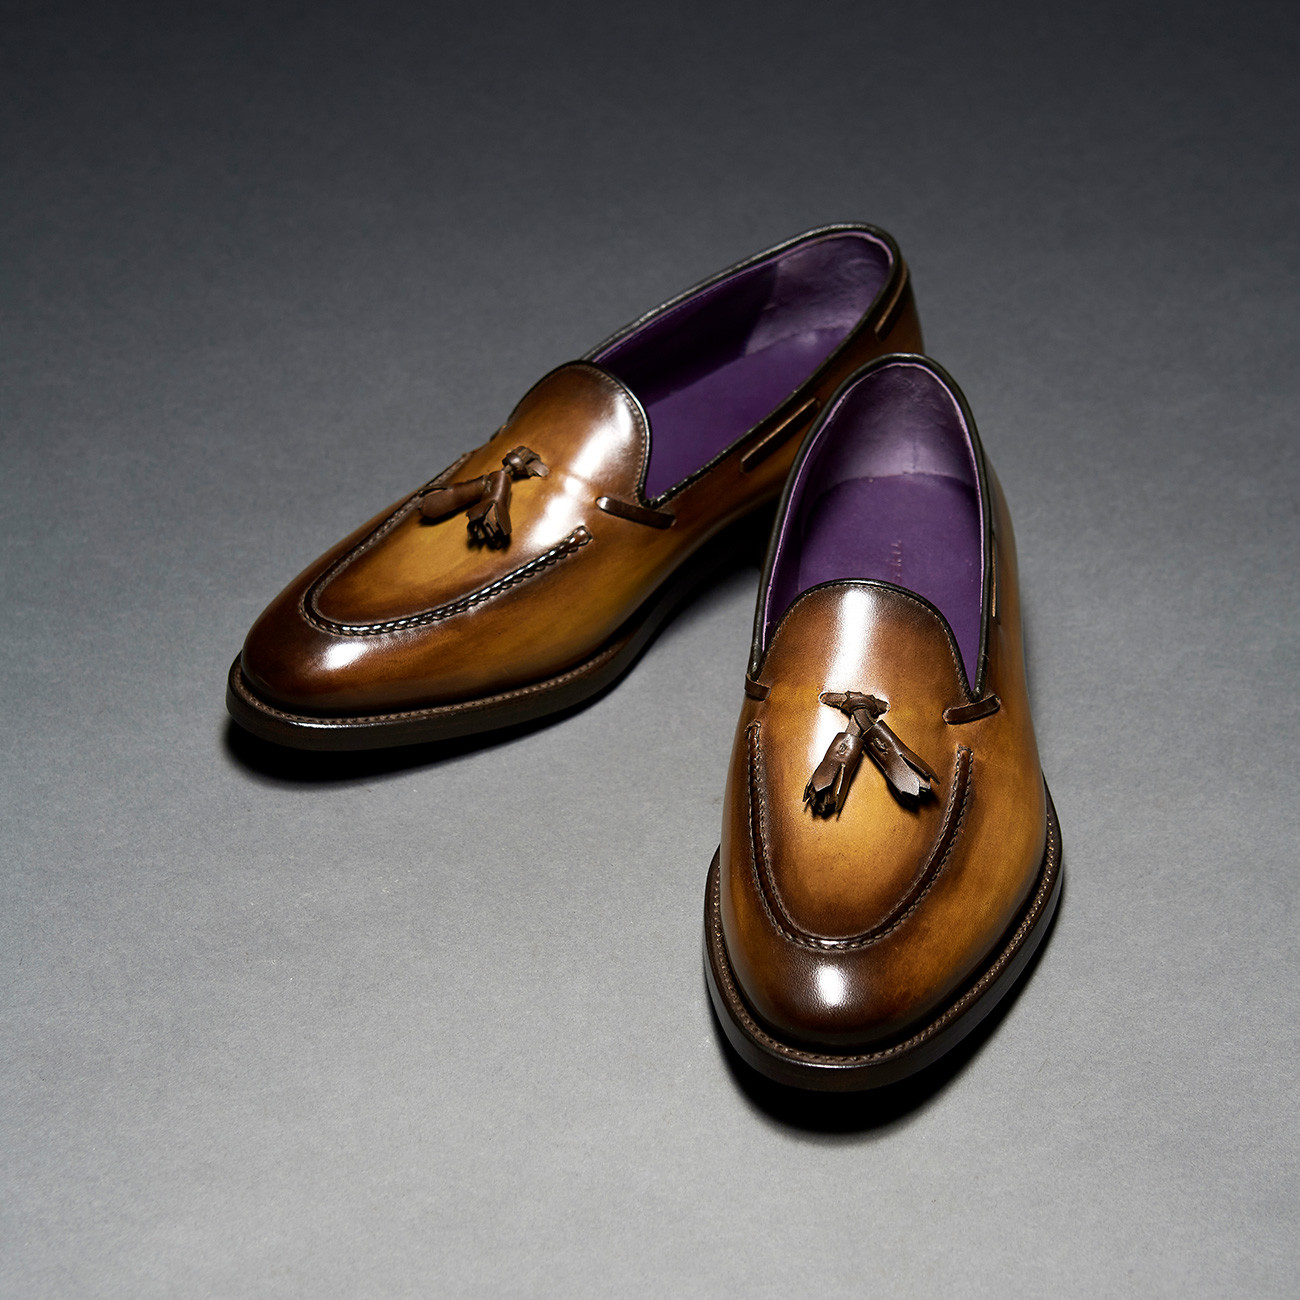 [Custommania X The shuri] PATINA TASSEL LOAFER LAF No.623